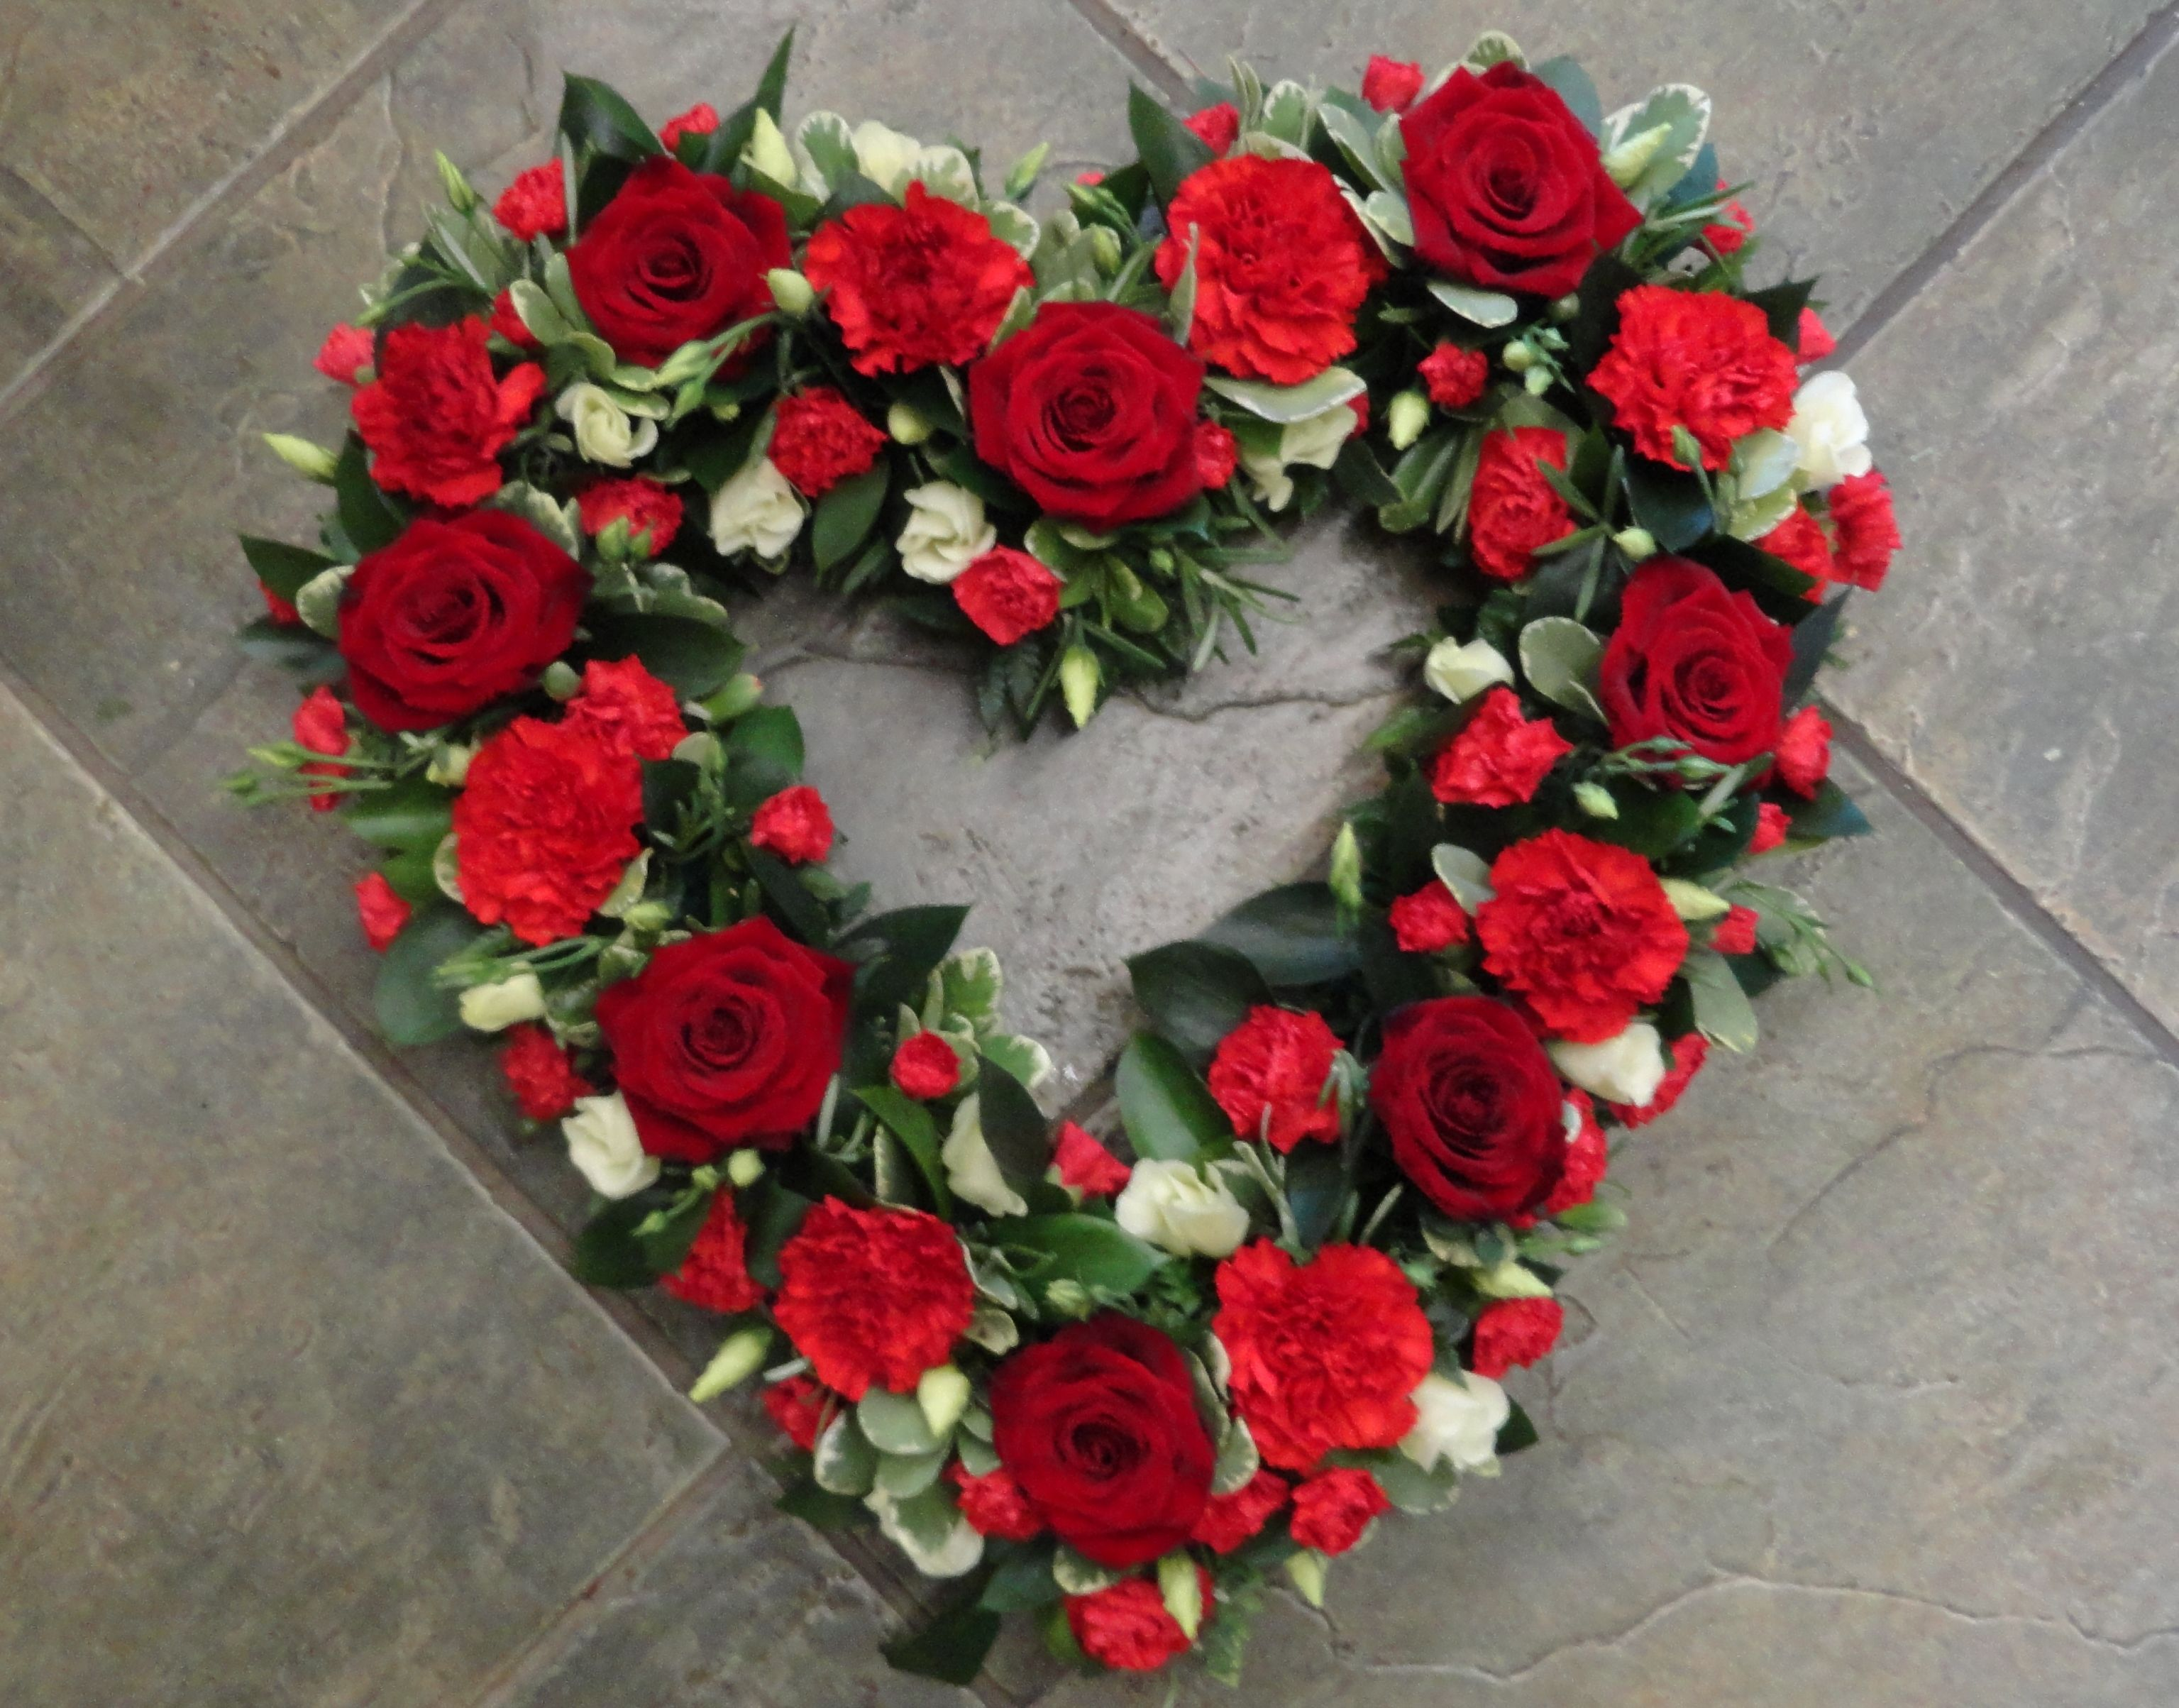 Loose style open heart of red flowers including roses and